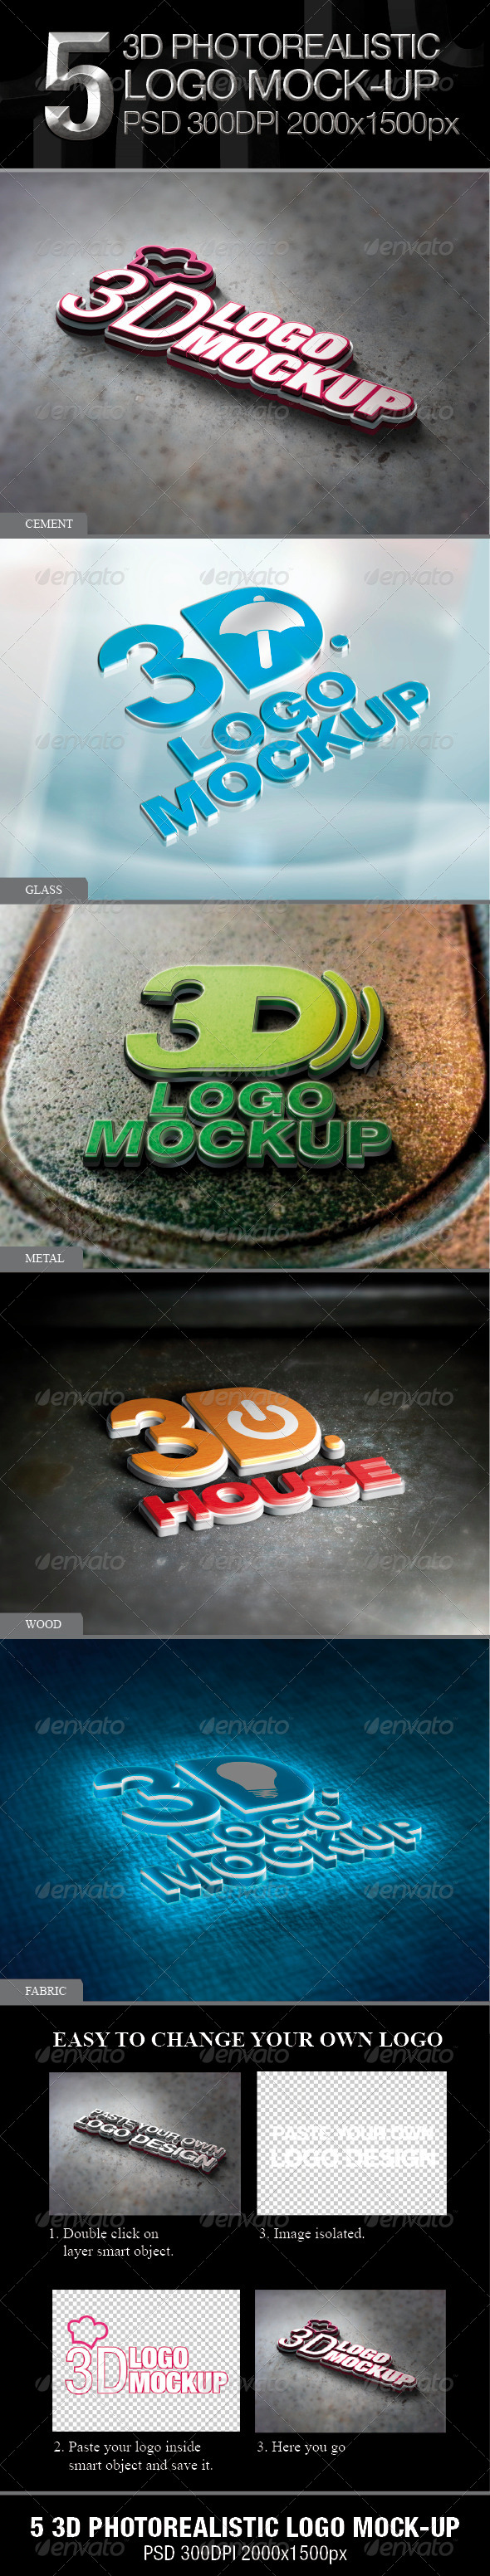 GraphicRiver 5 3D Photorealistic Logo Mock-up 4070798